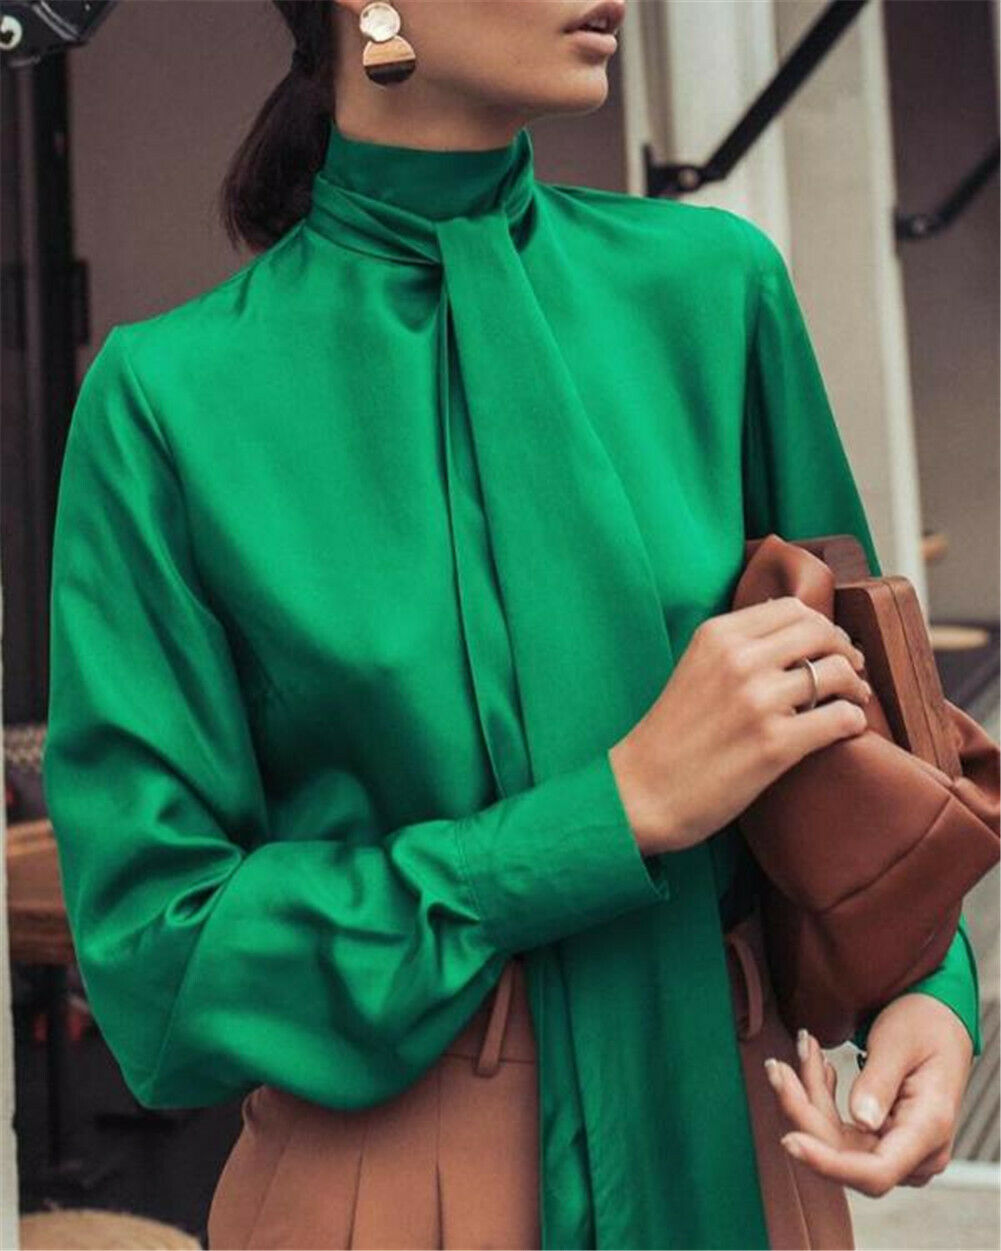 Women Satin Blouse Fashion High Neck Ribbon Tie Shirt Soft Silk Long Sleeve Shirts Office Lady Pullover Female Top Camisas Mujer